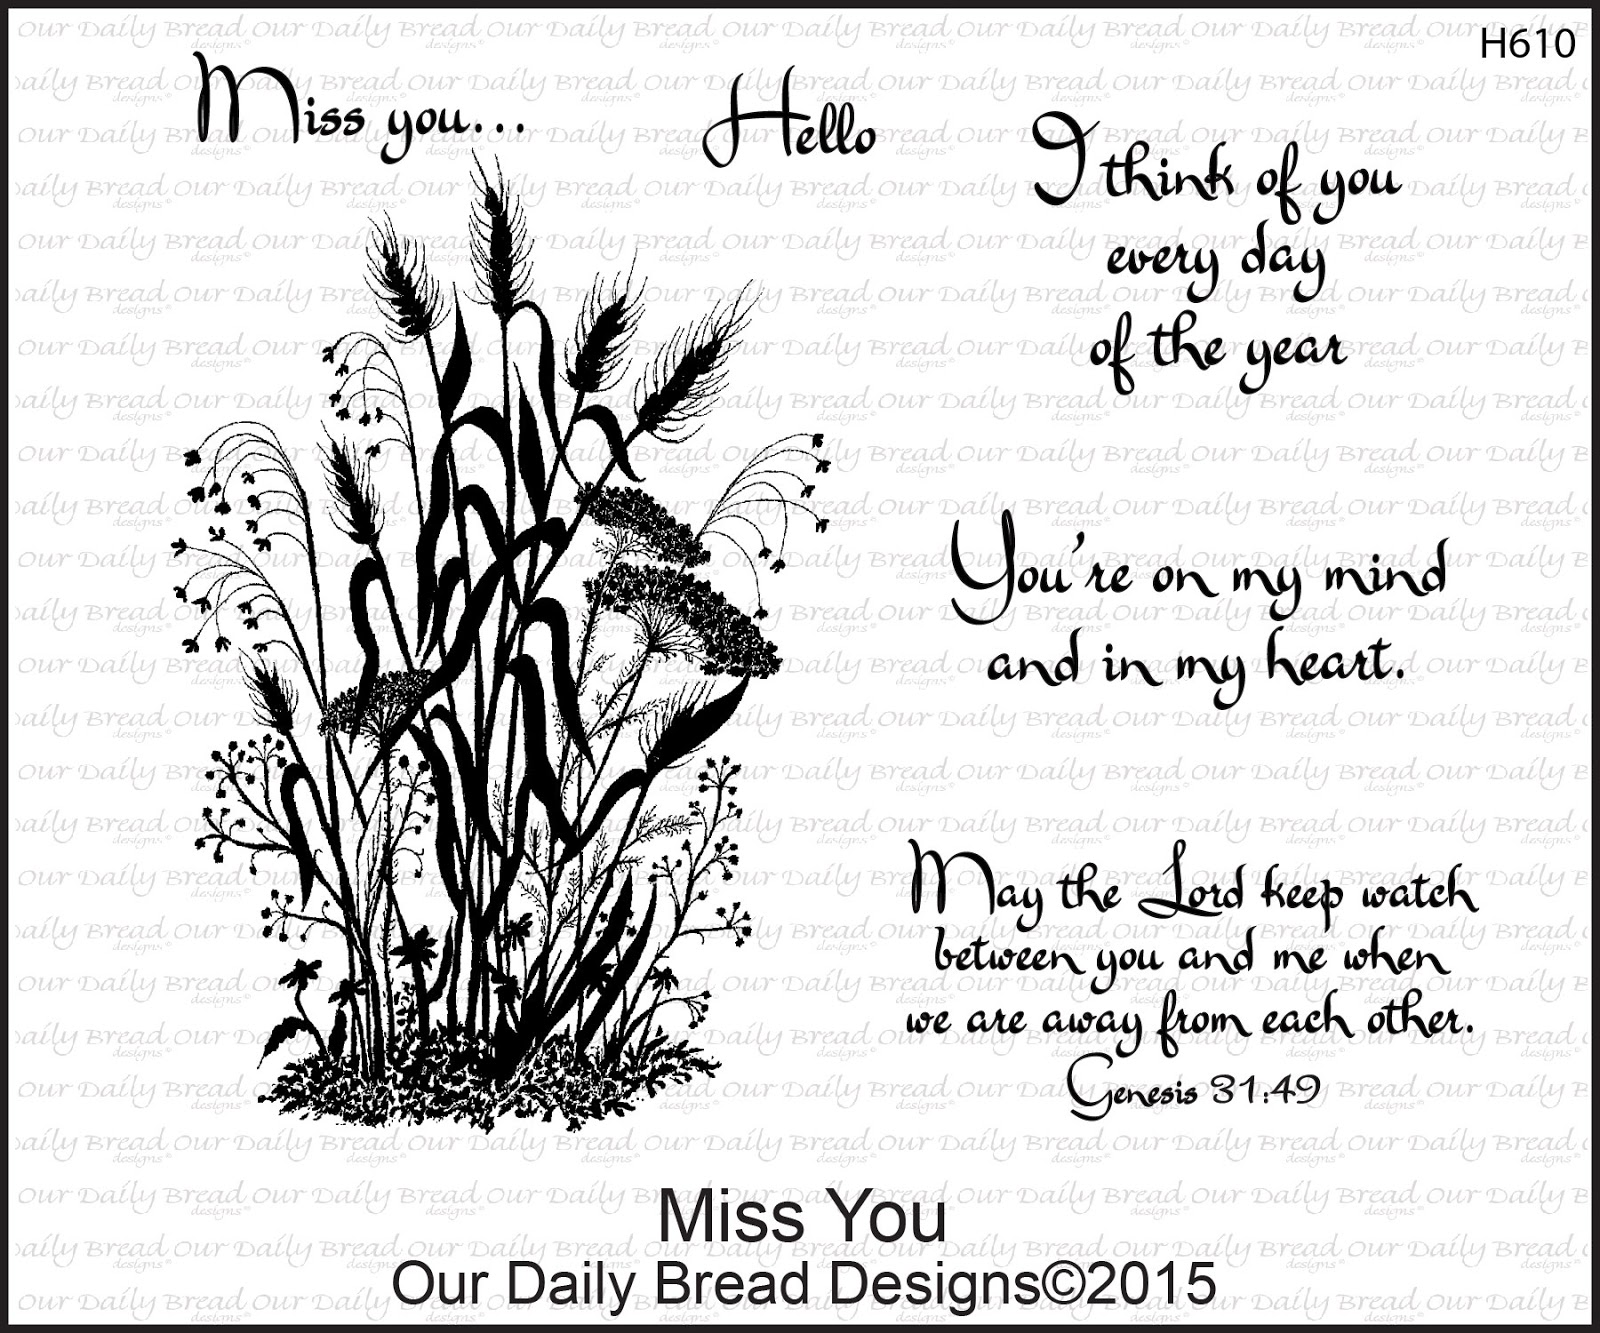 Stamps - Our Daily Bread Designs Miss You